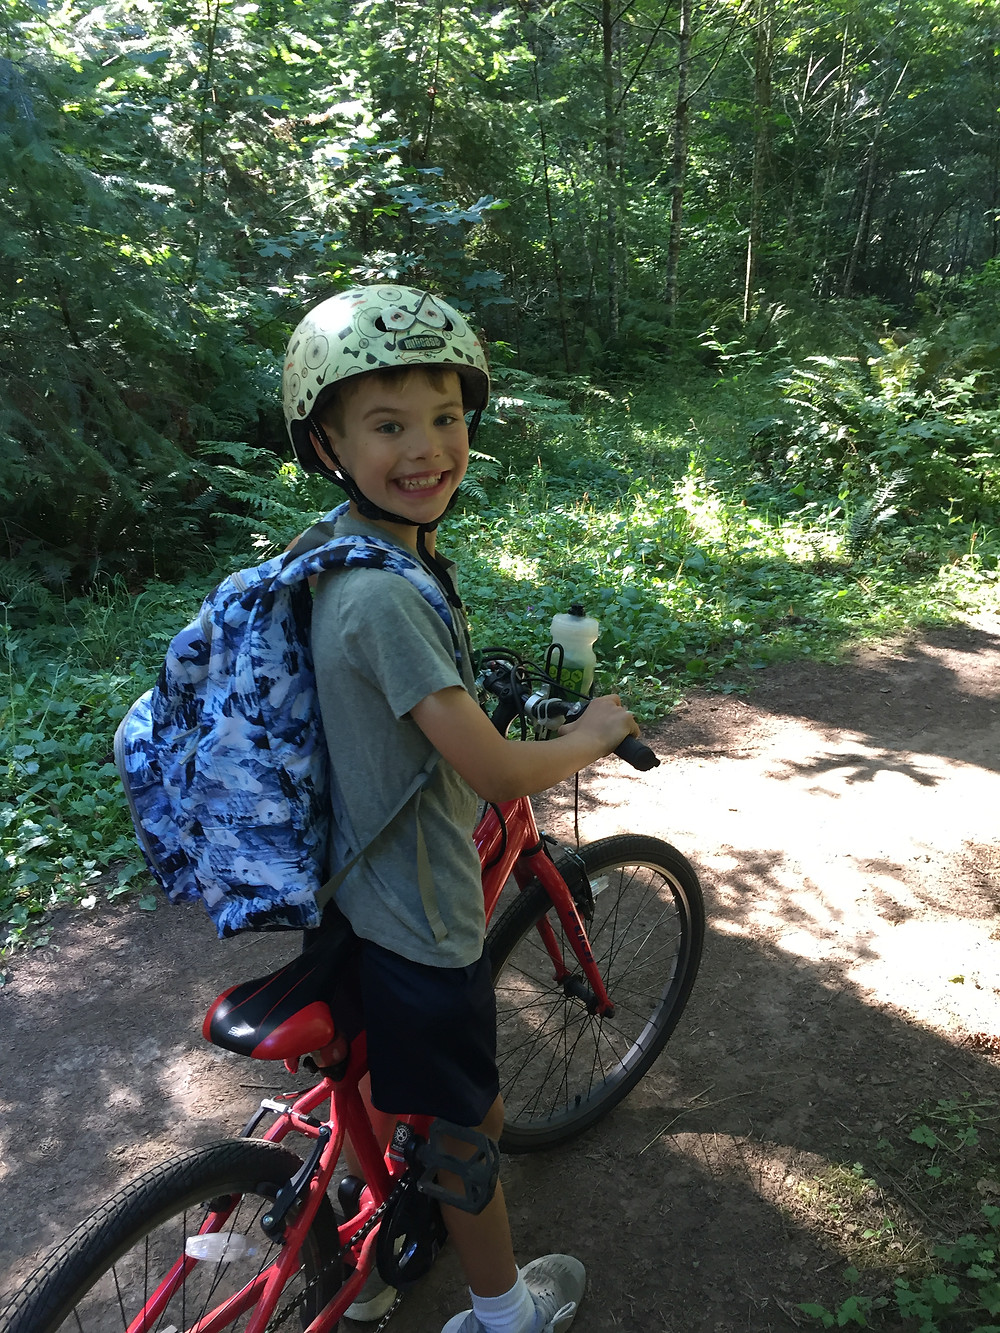 child with helmet and backpack straddling a bike and smiling on trail through forest